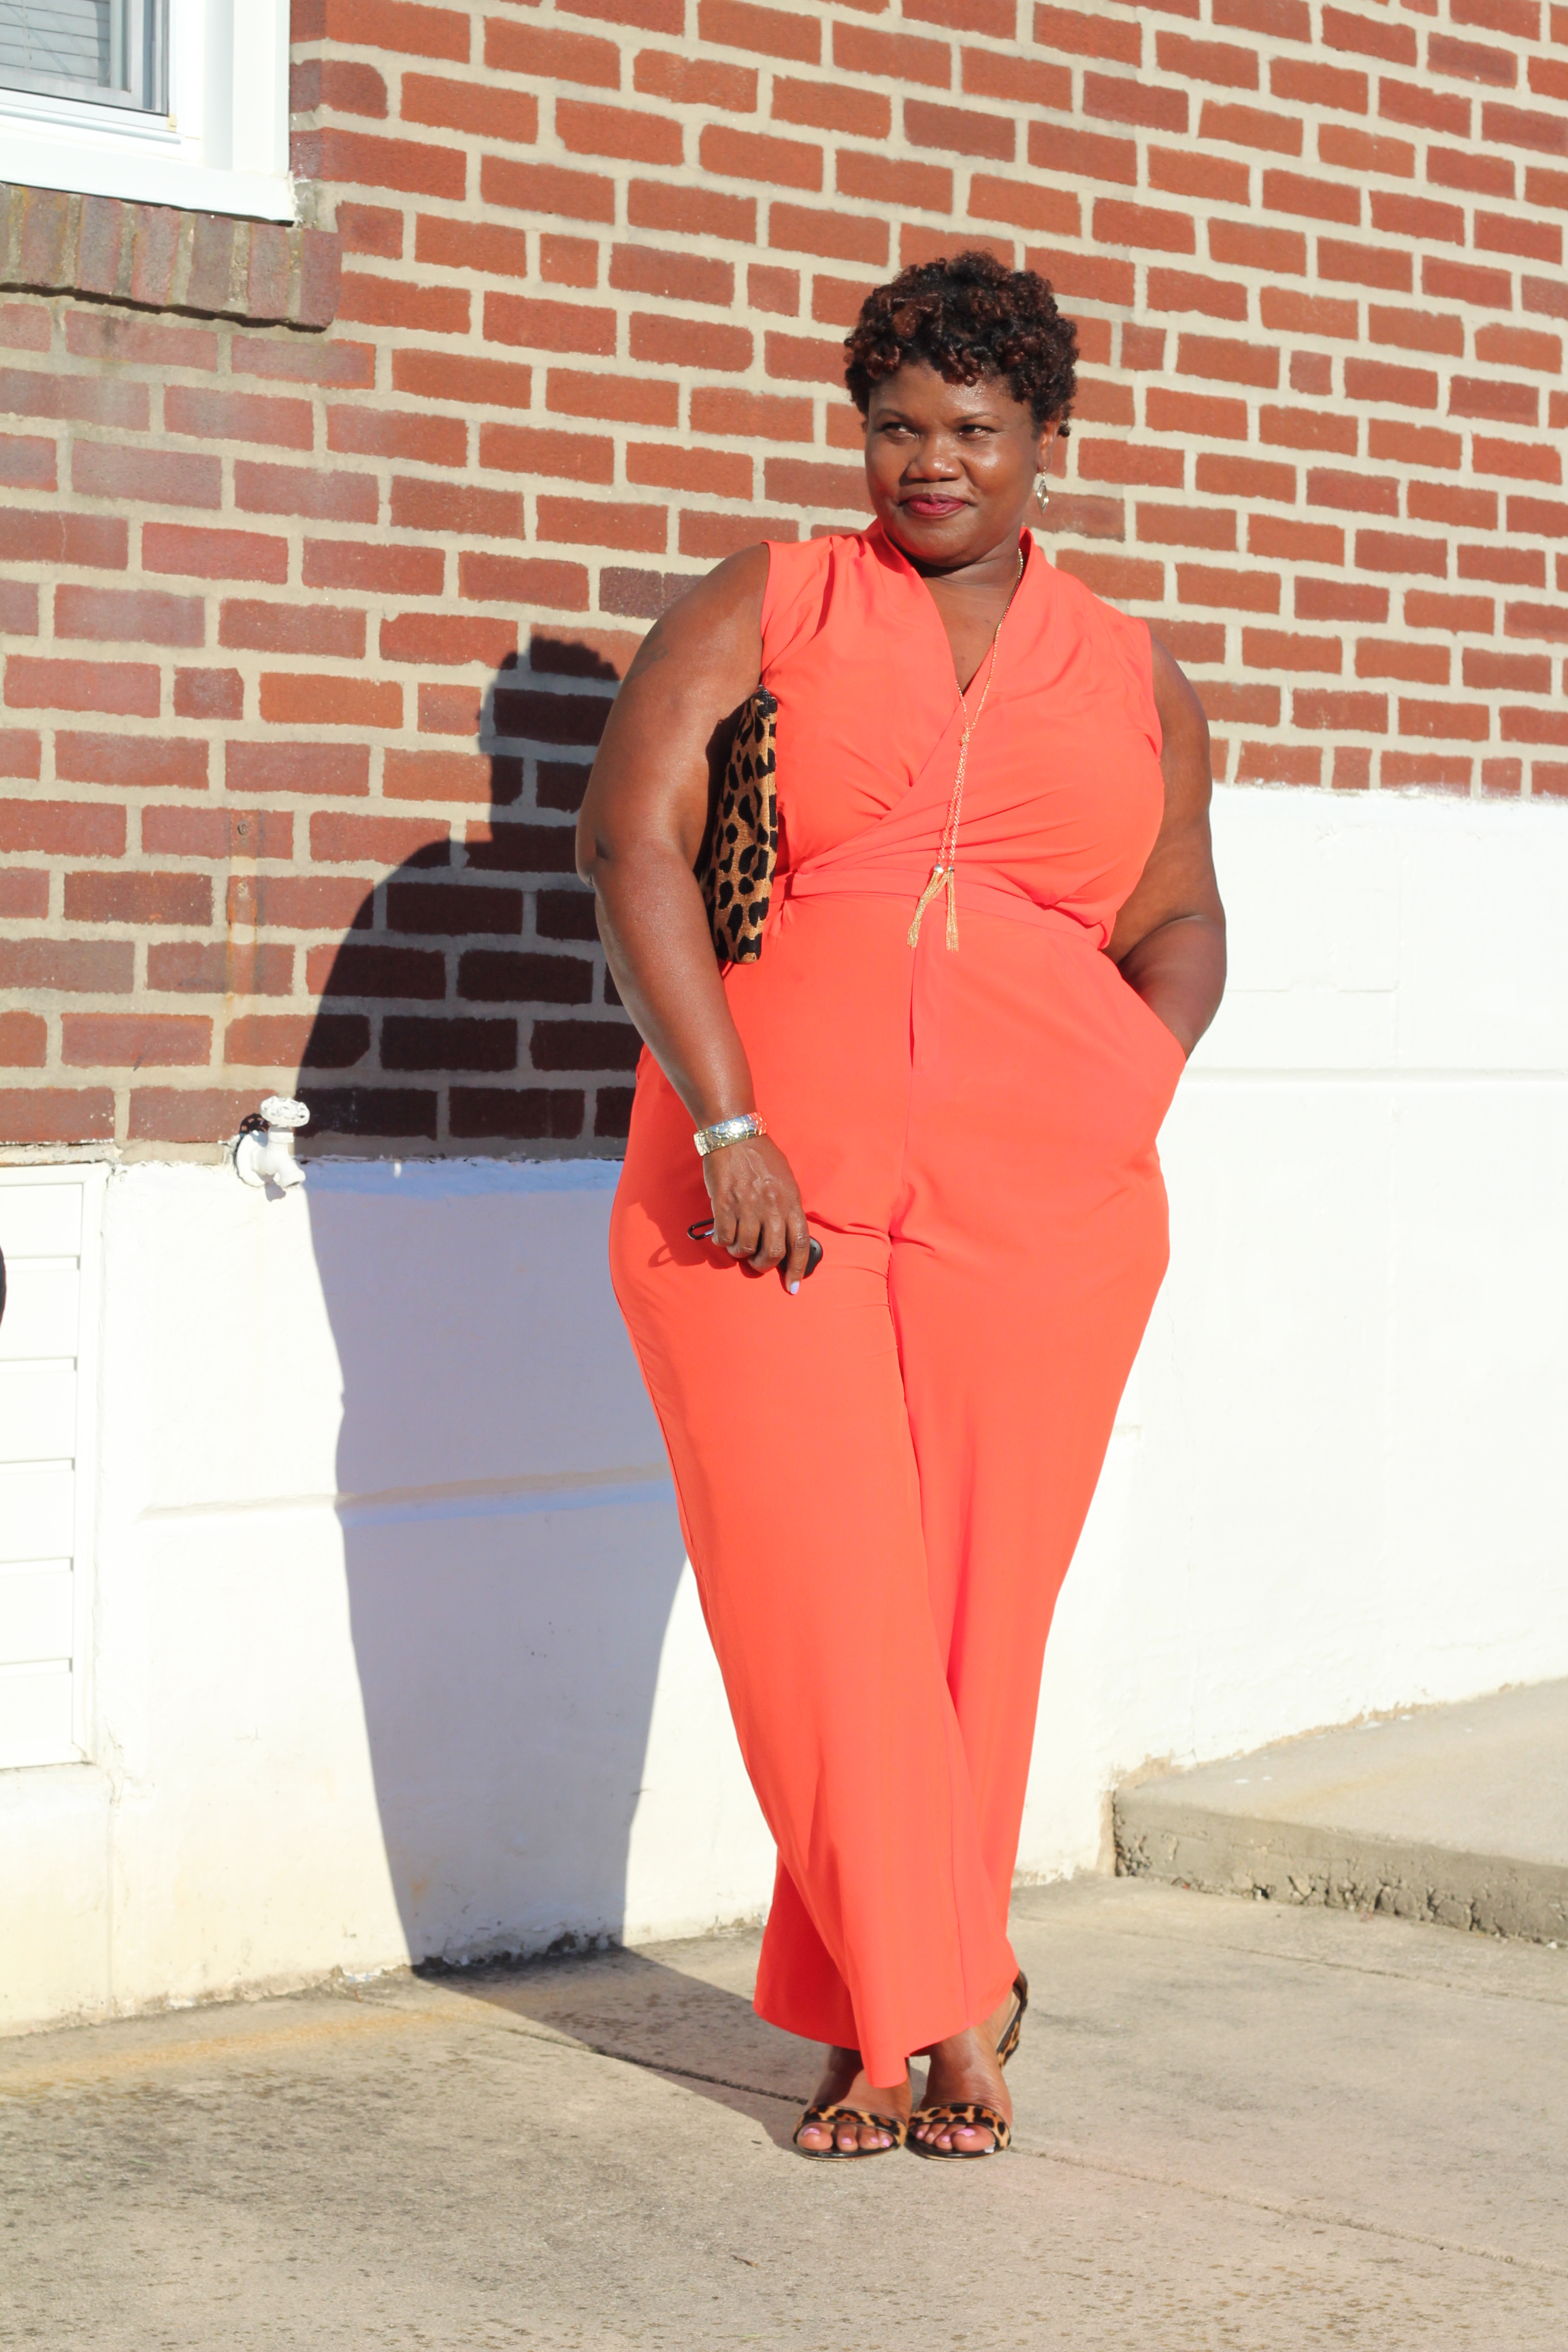 Casual Friday Lane Bryant Memories Grown And Curvy Woman